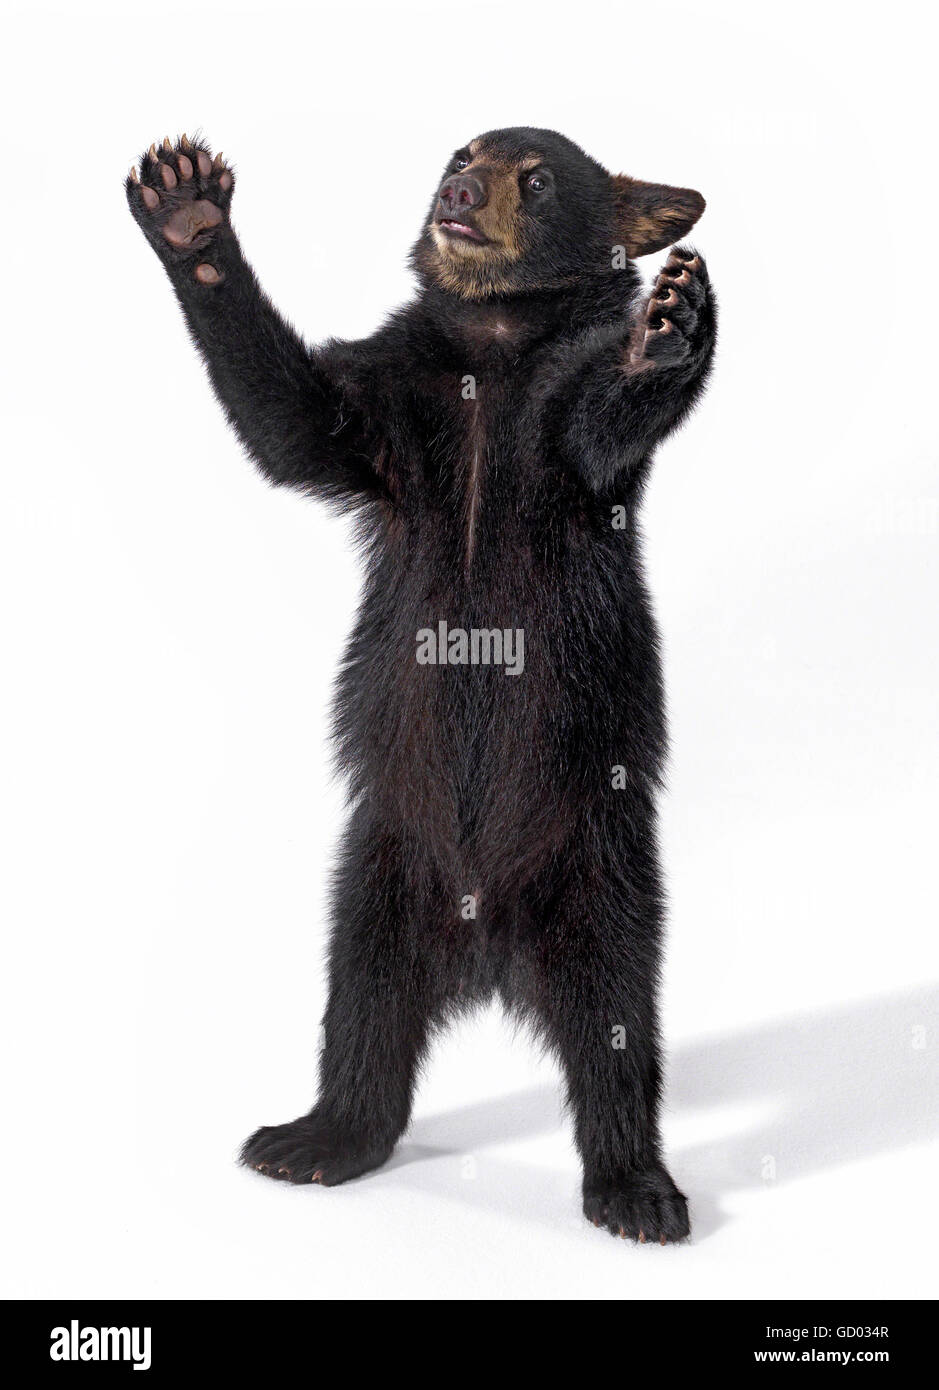 34b1da5e017 Black bear cub standing on hind legs with arms open wide and a whimsical  expression against